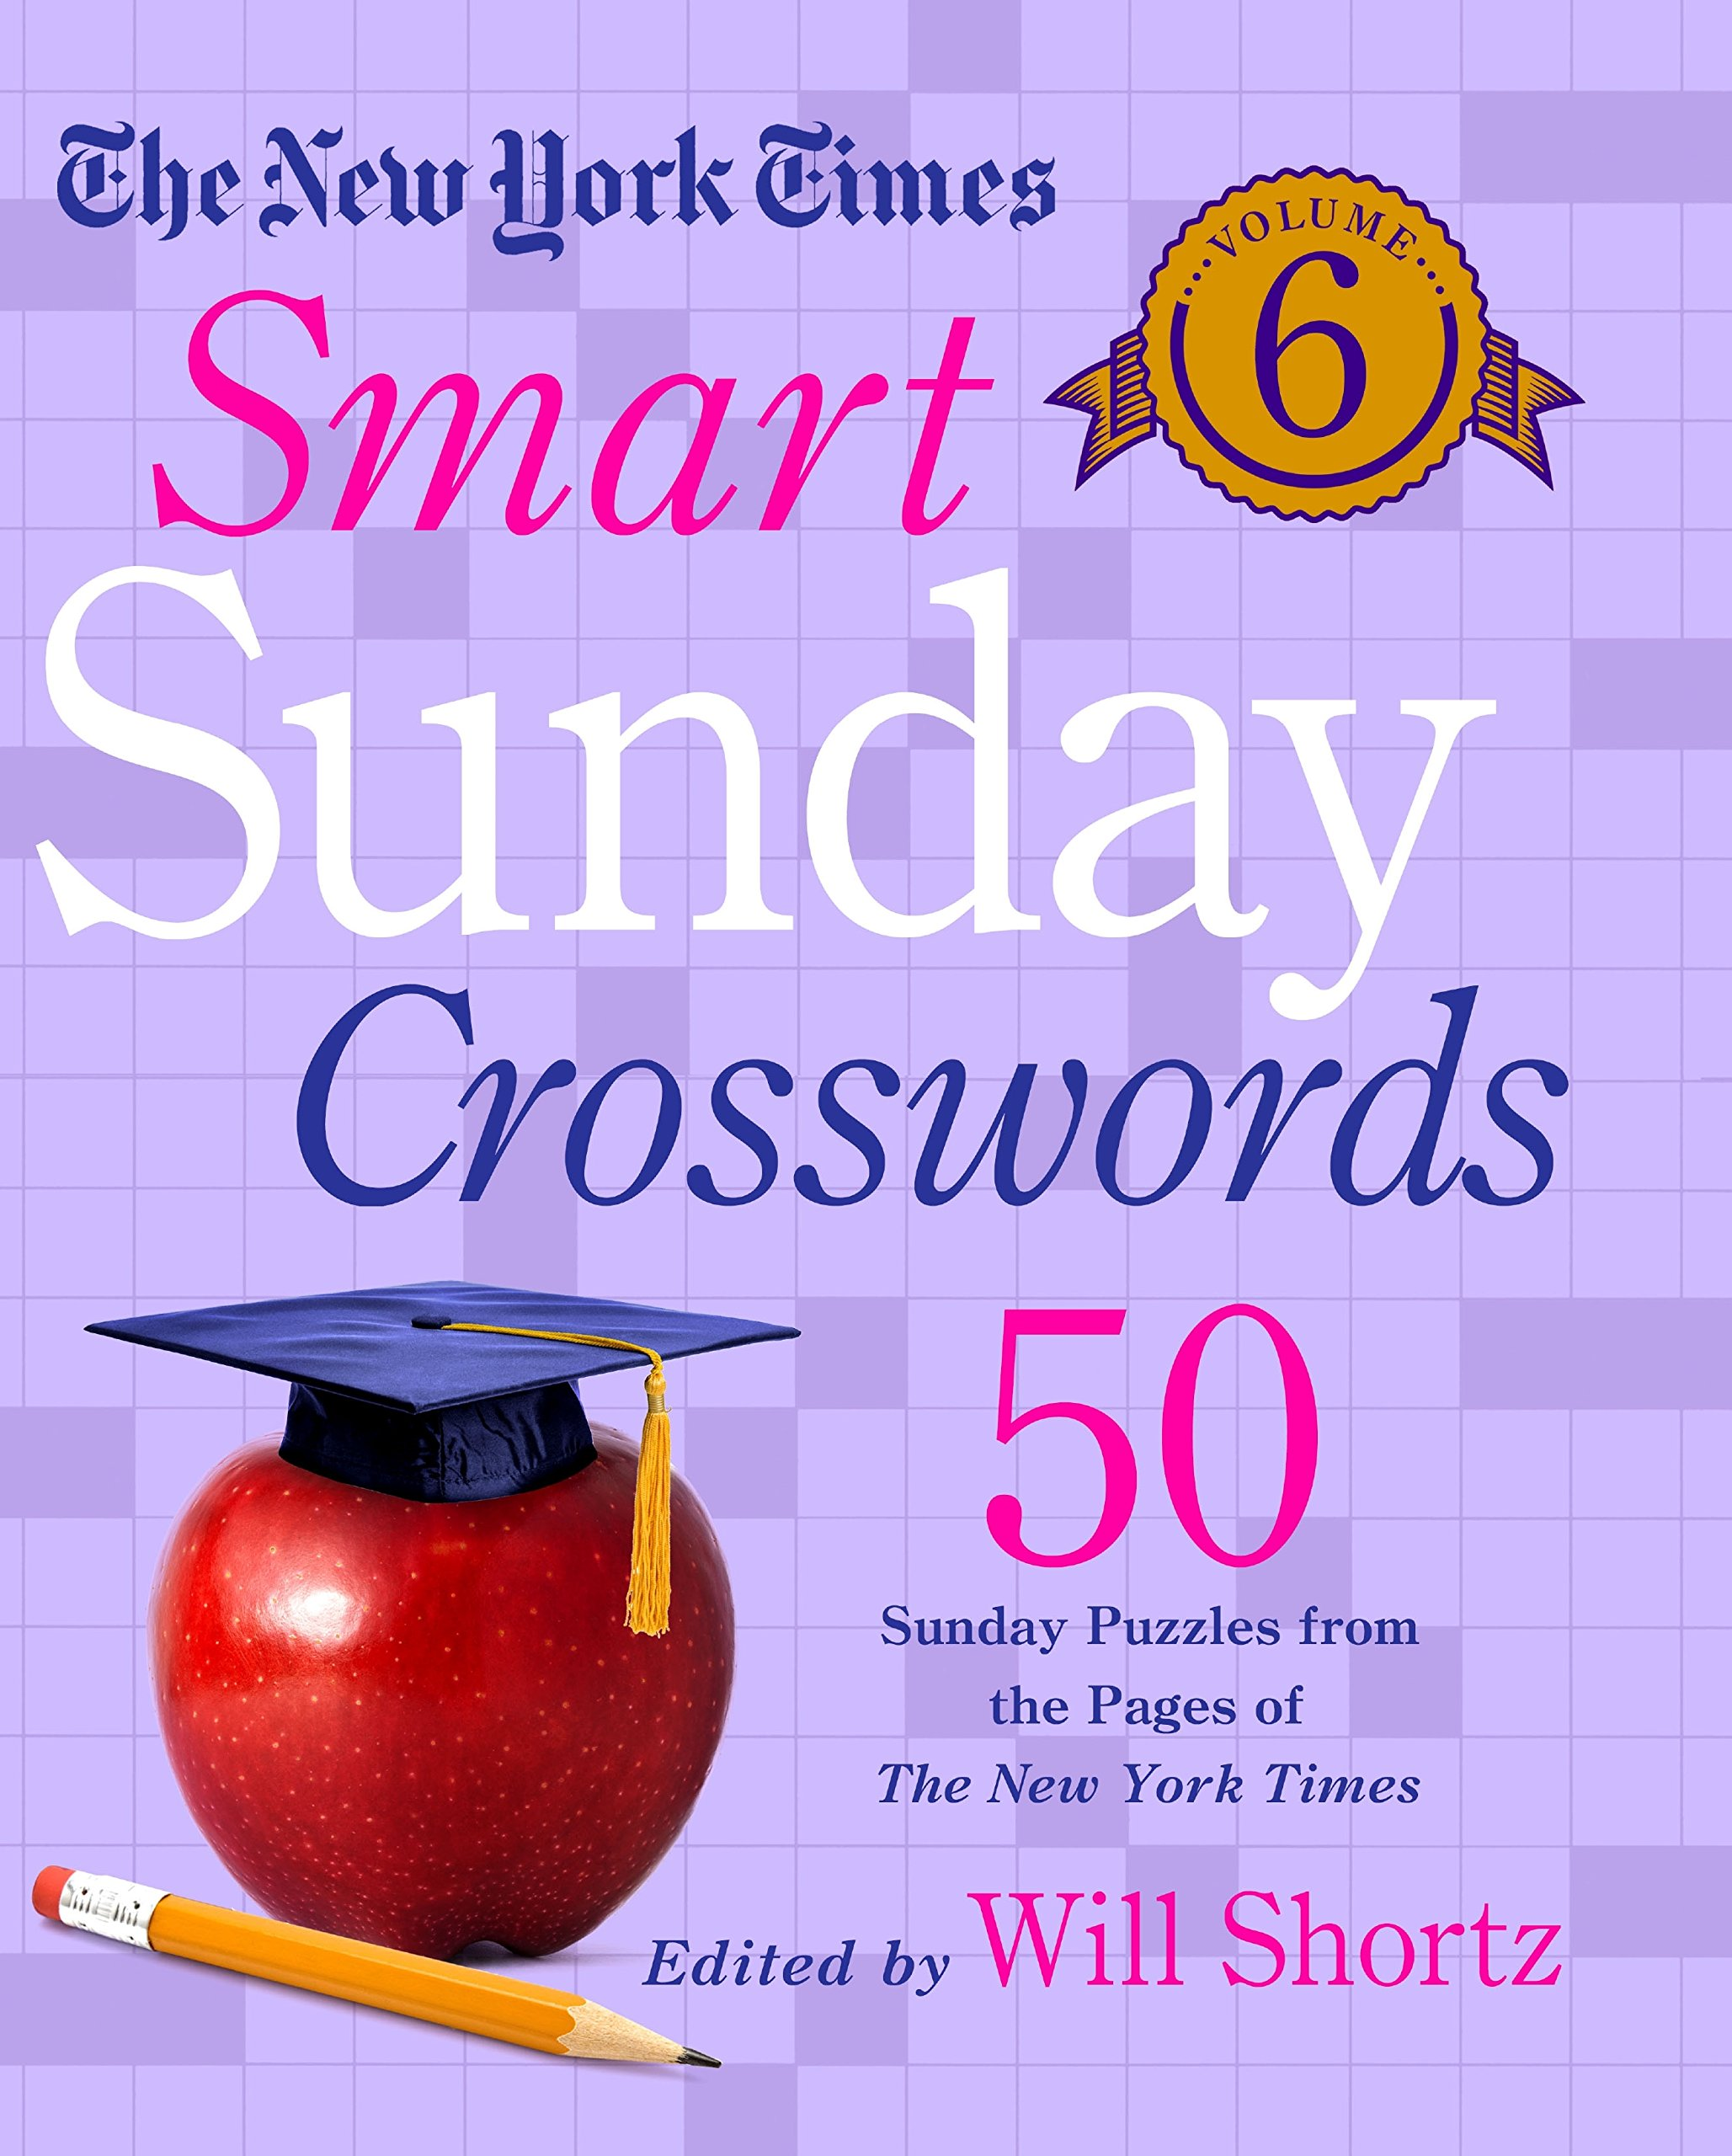 Download The New York Times Smart Sunday Crosswords Volume 6: 50 Sunday Puzzles from the Pages of The New York Times (The New York Times Crossword Puzzles) PDF